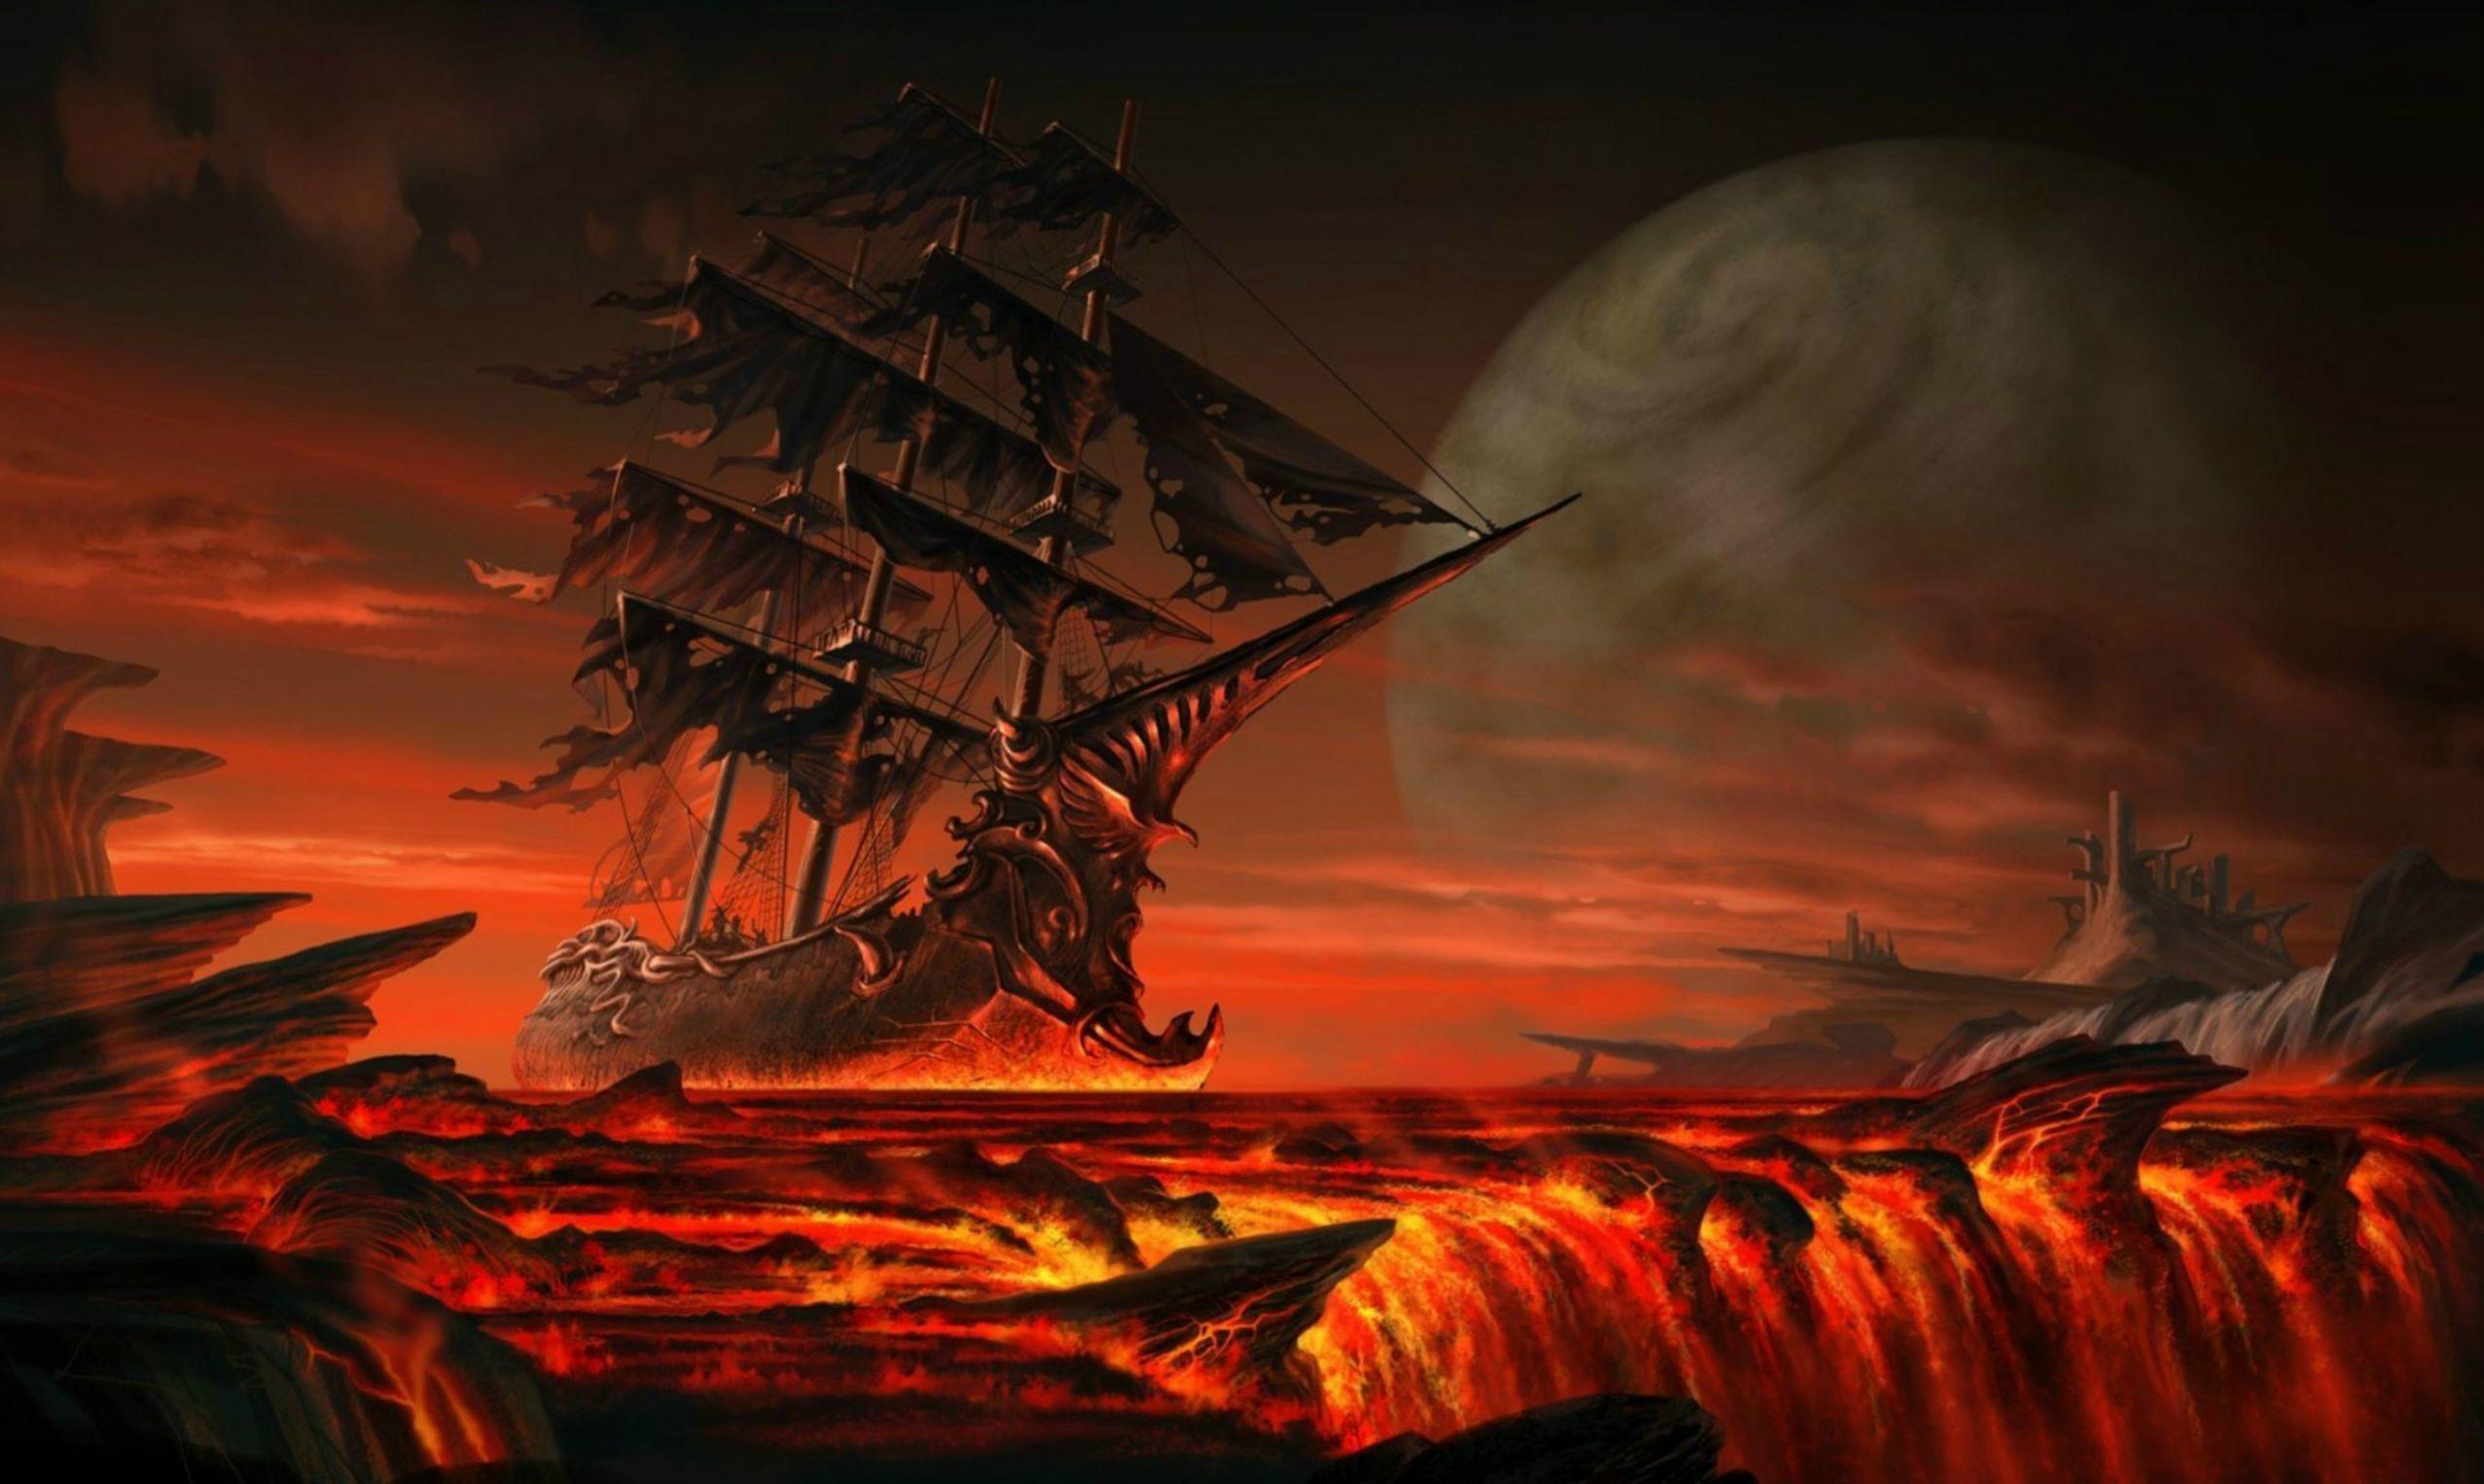 Ship sailing on lava : wallpapers